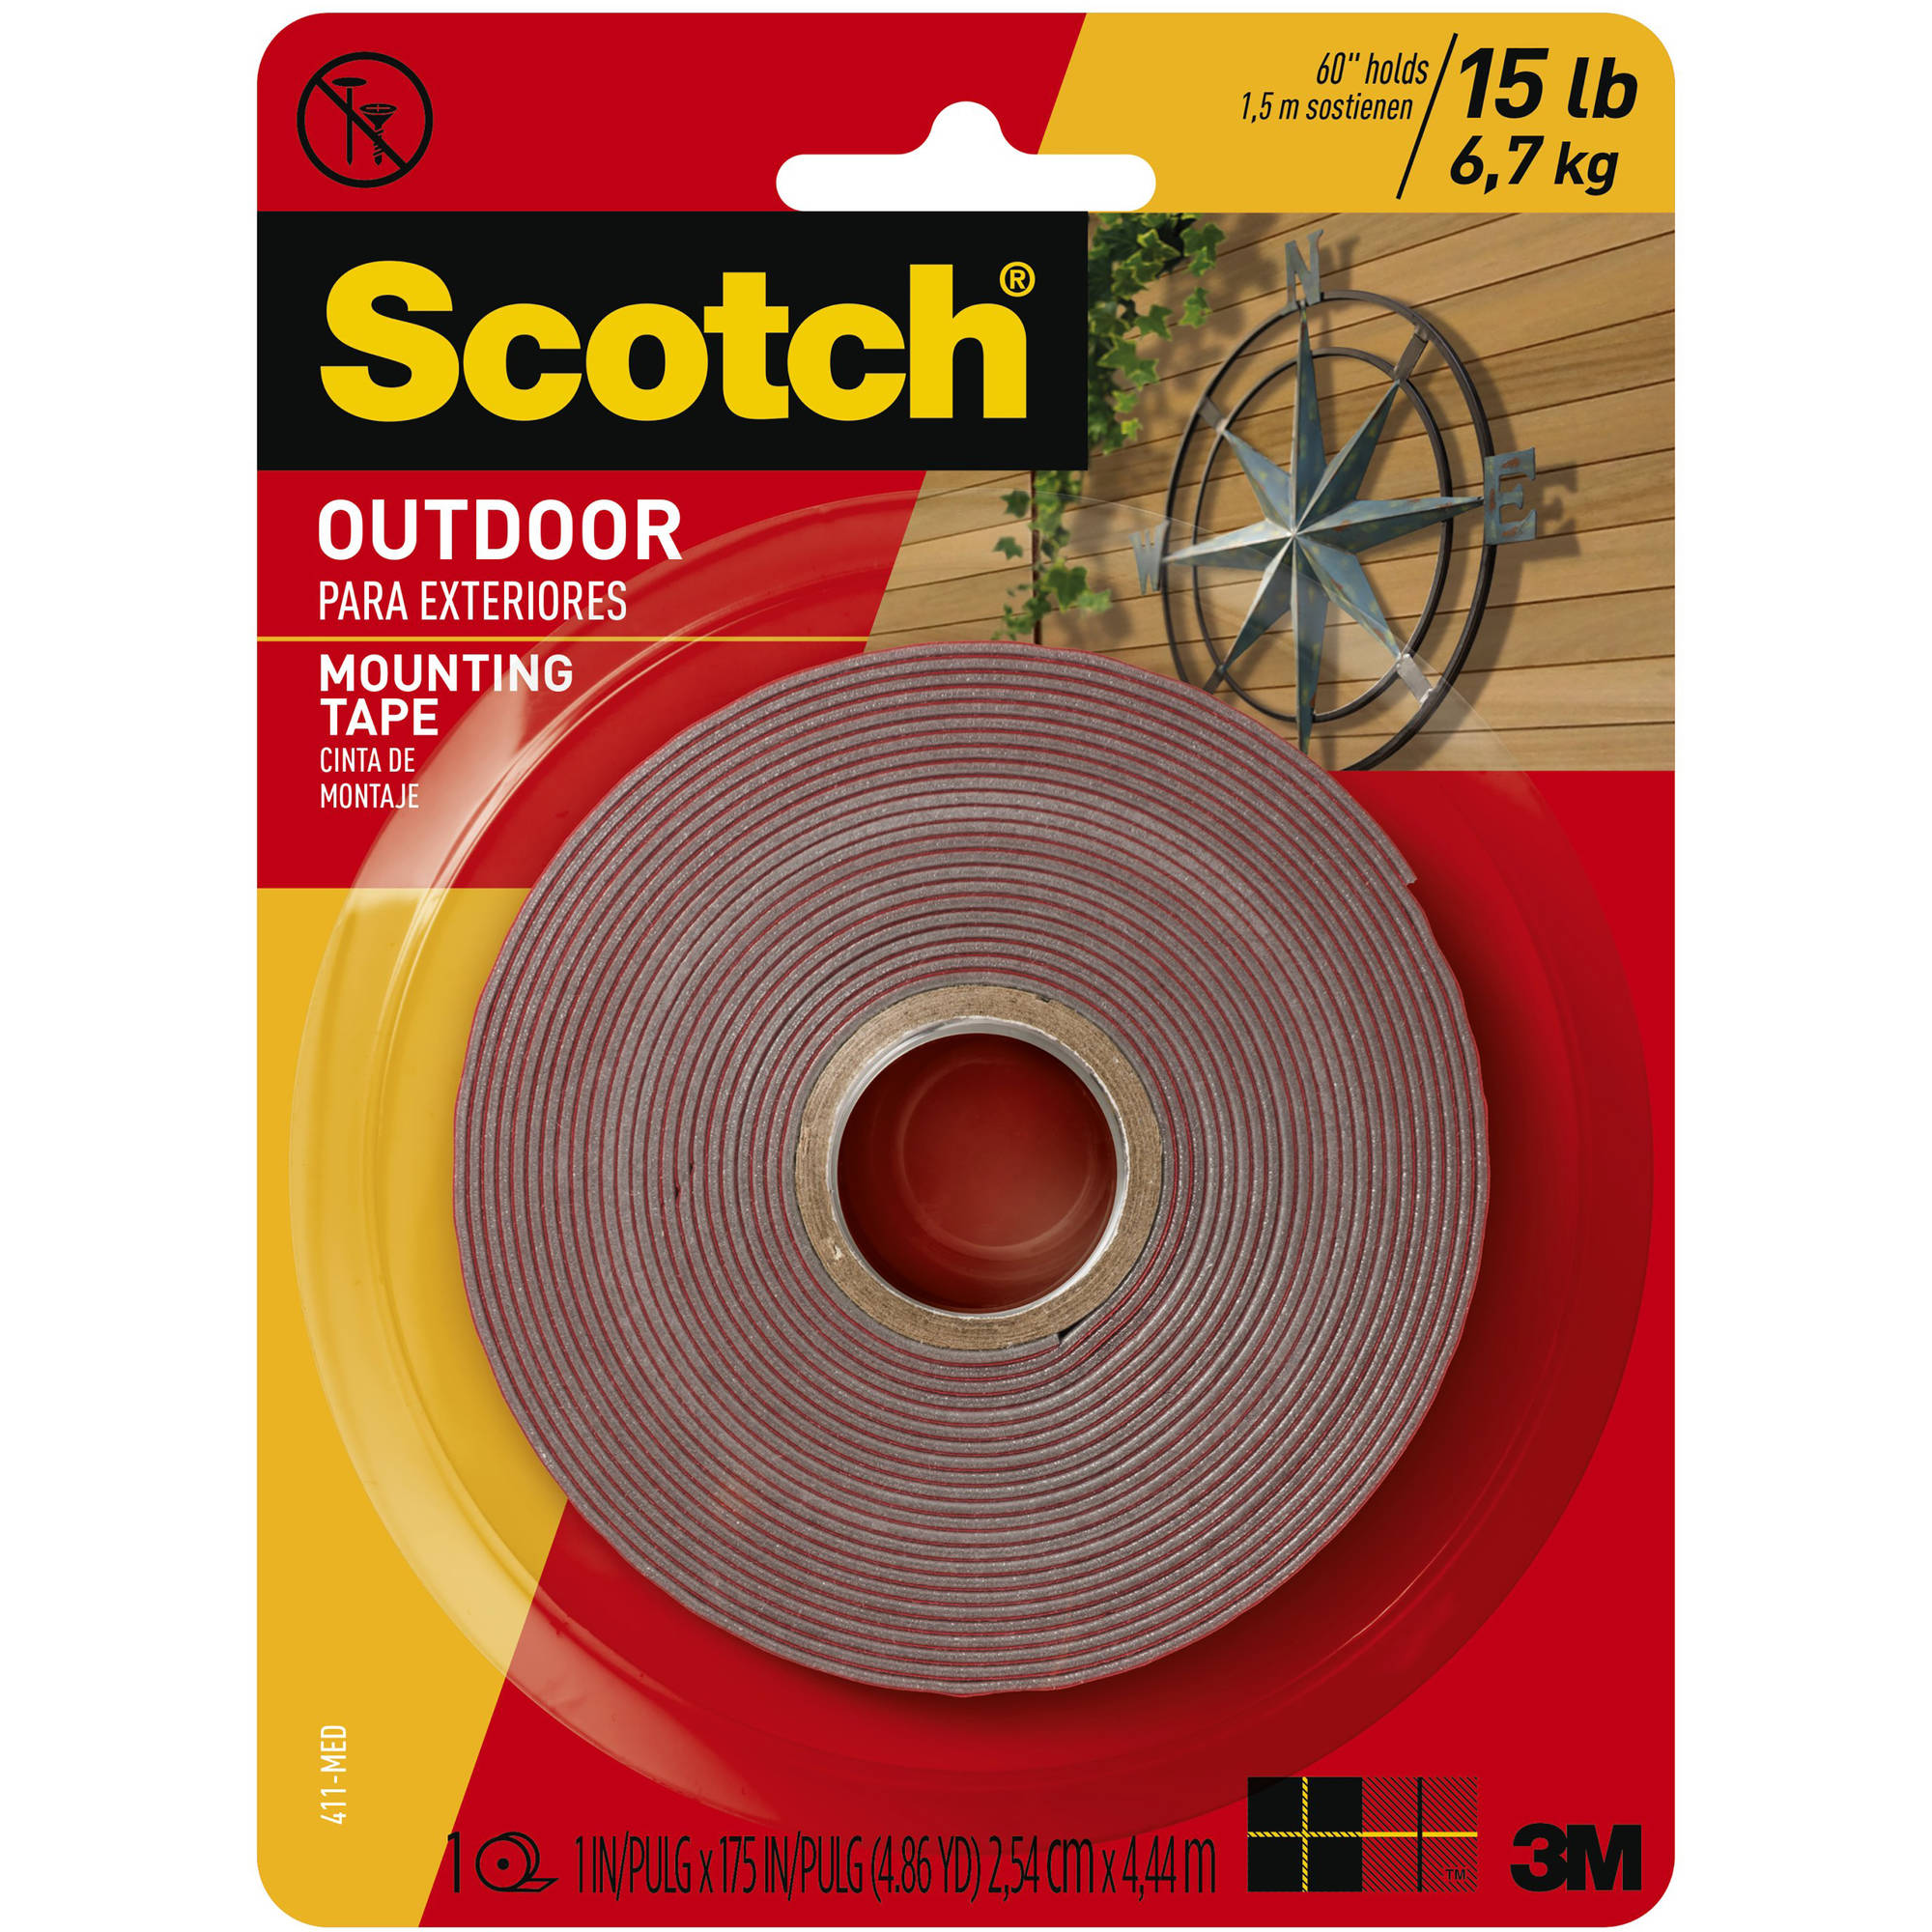 Scotch Outdoor Mounting Tape, 1 in. x 175 in., Gray, 1 Roll/Pack